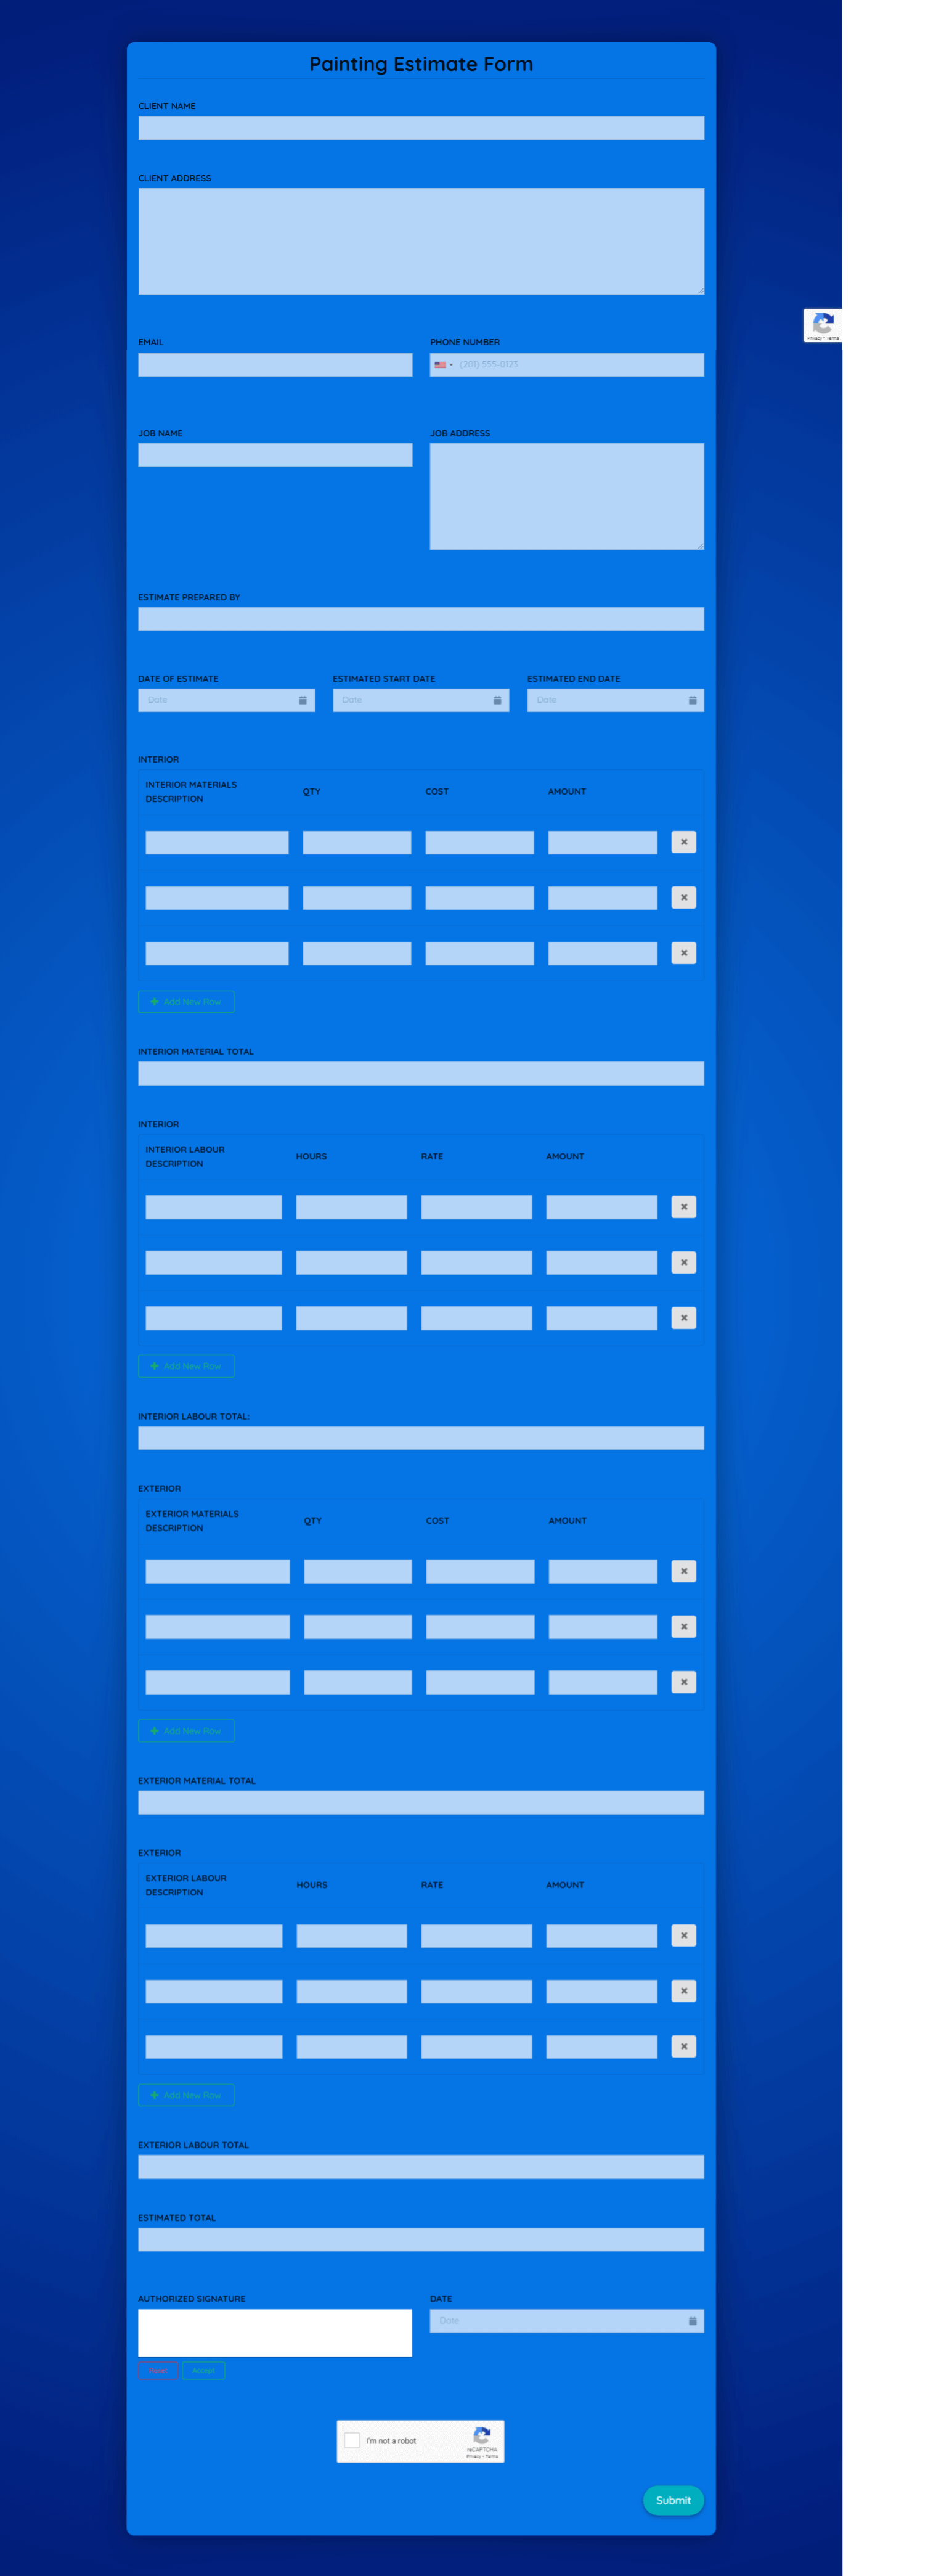 Painting Estimate Form Template template